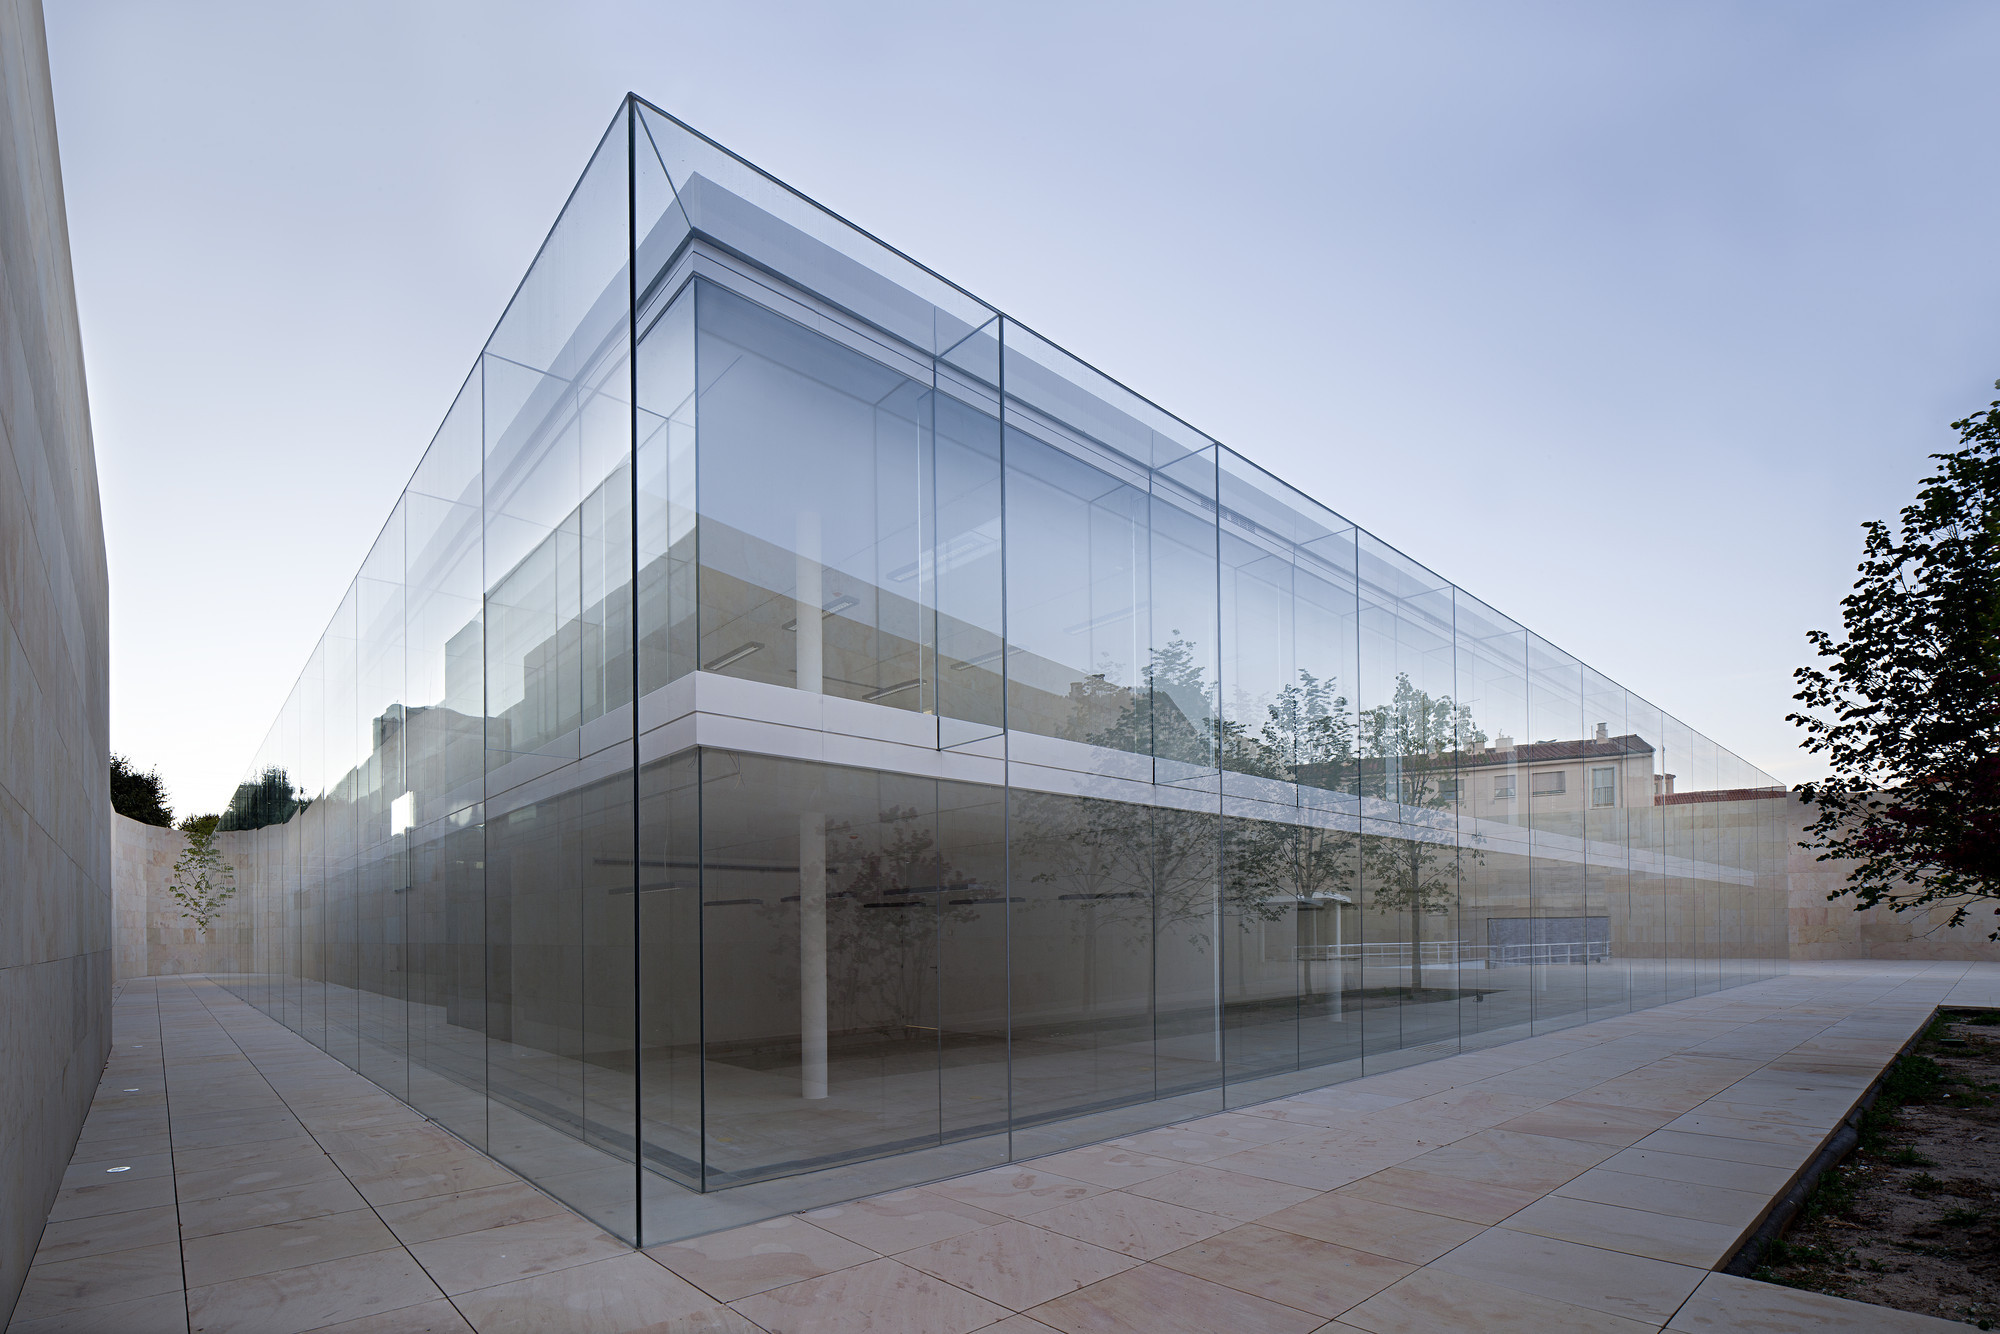 Alberto campo baeza wins 2015 bigmat international architecture award archd - Toile de verre skinglass ...